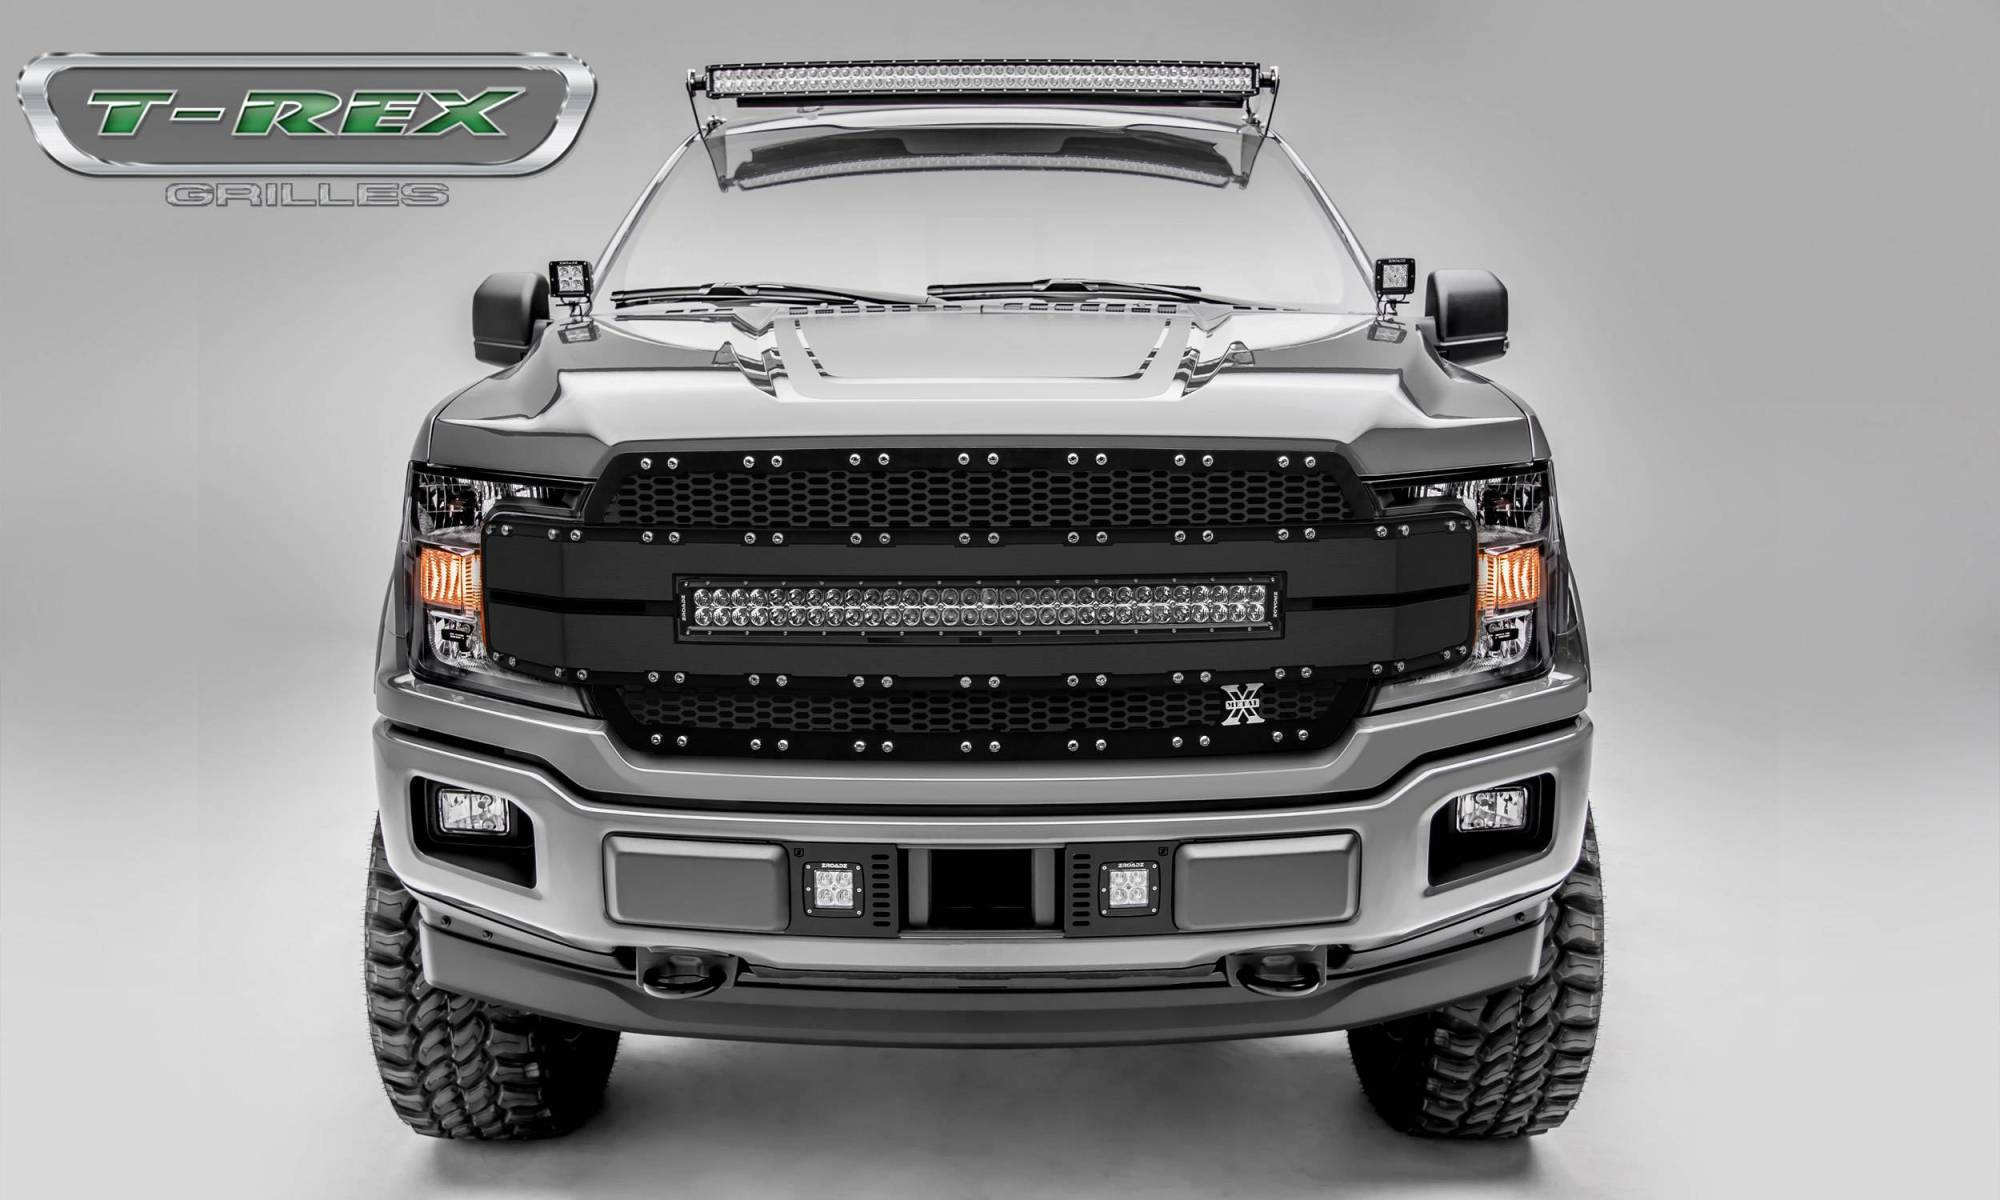 hight resolution of ford f 150 torch al series replacement grille includes 1 30 led light bar universal wire harness aluminum frame pt 6315781